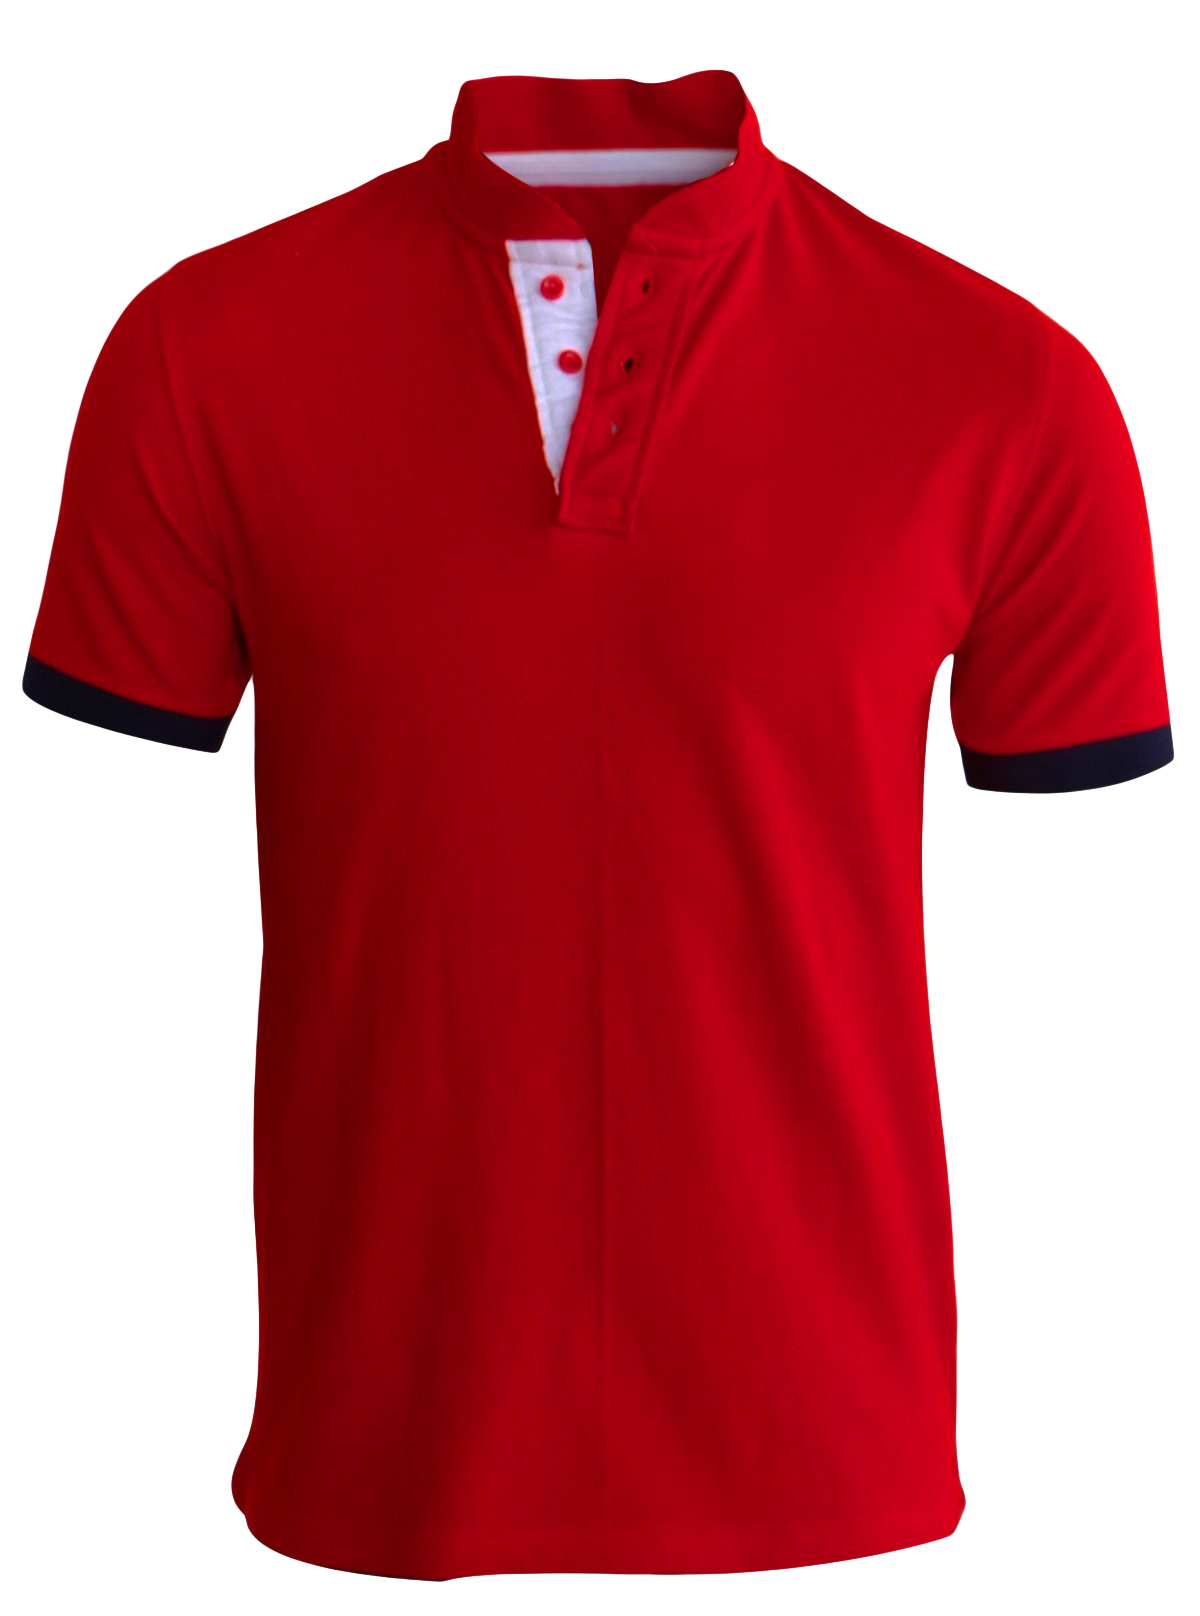 Red T Shirt PNG Transparent Image - Tshirt PNG